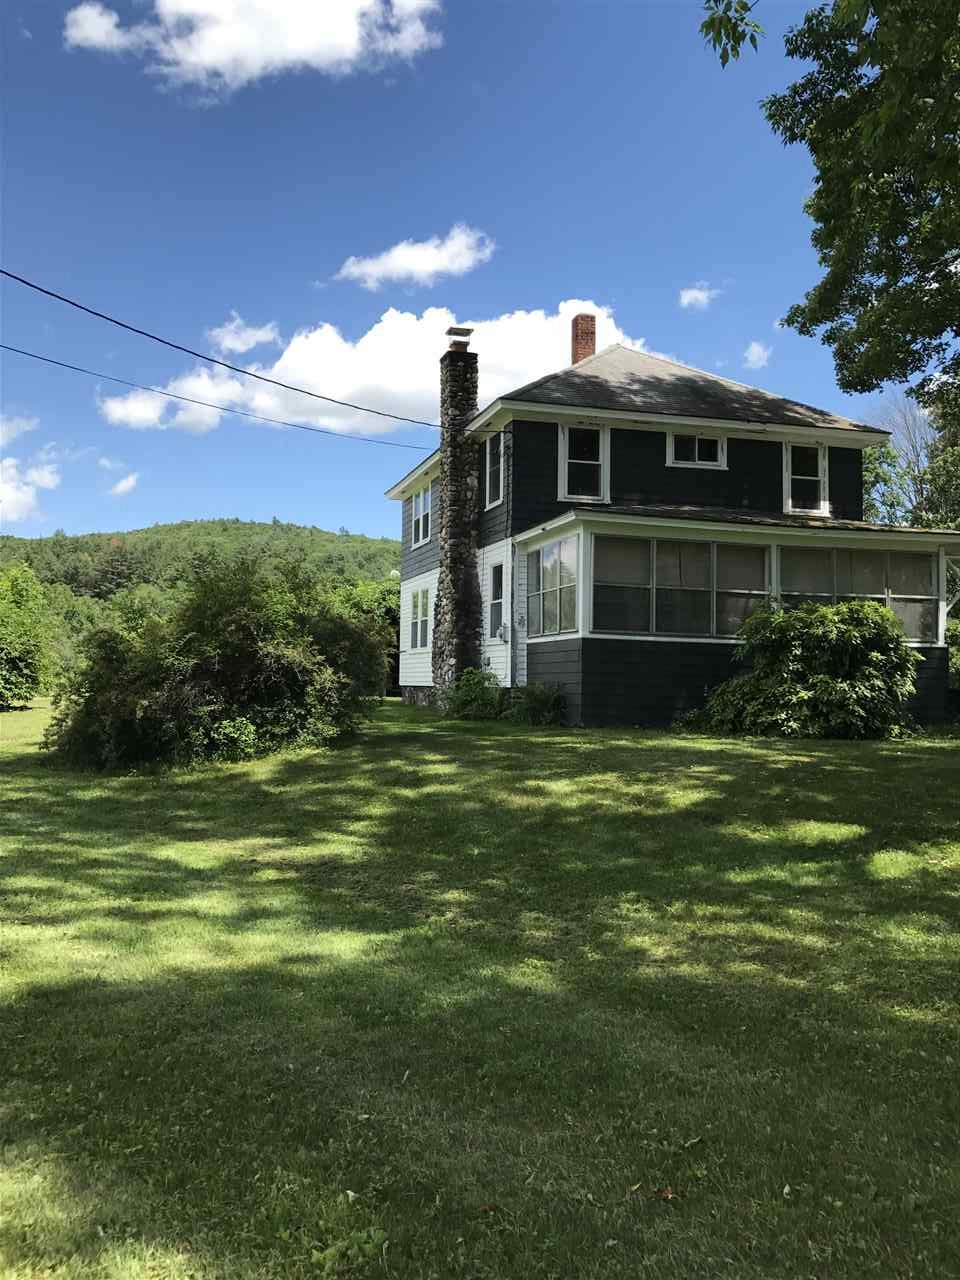 Claremont NH  3 bedroom Home  for sale